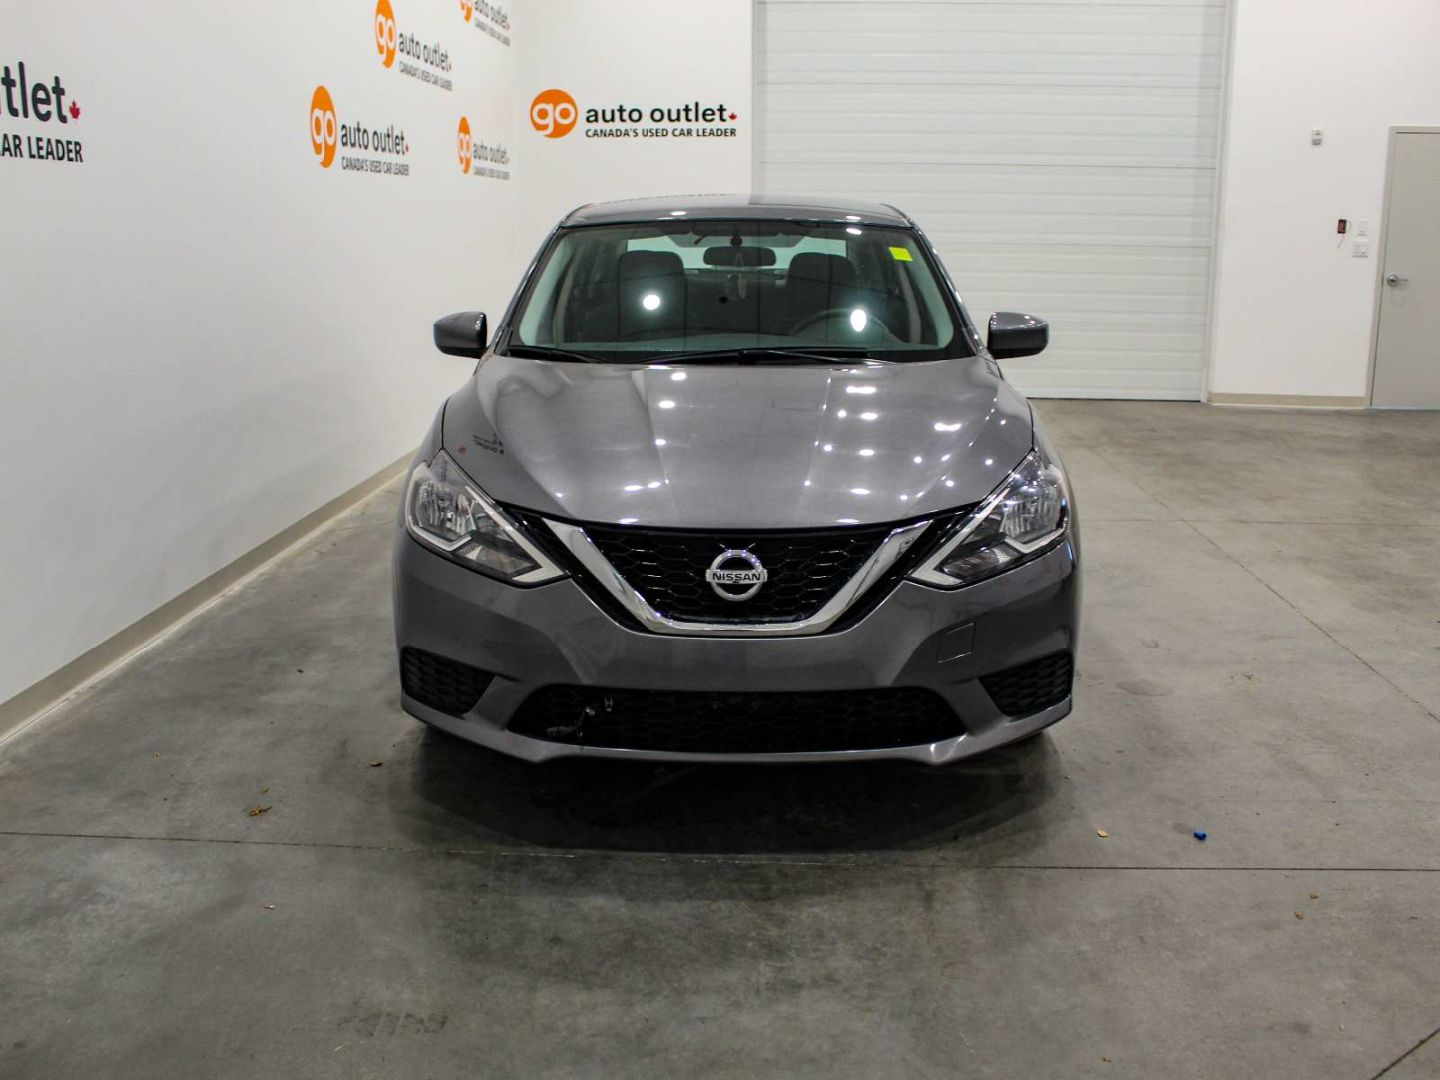 2016 Nissan Sentra S for sale in Edmonton, Alberta